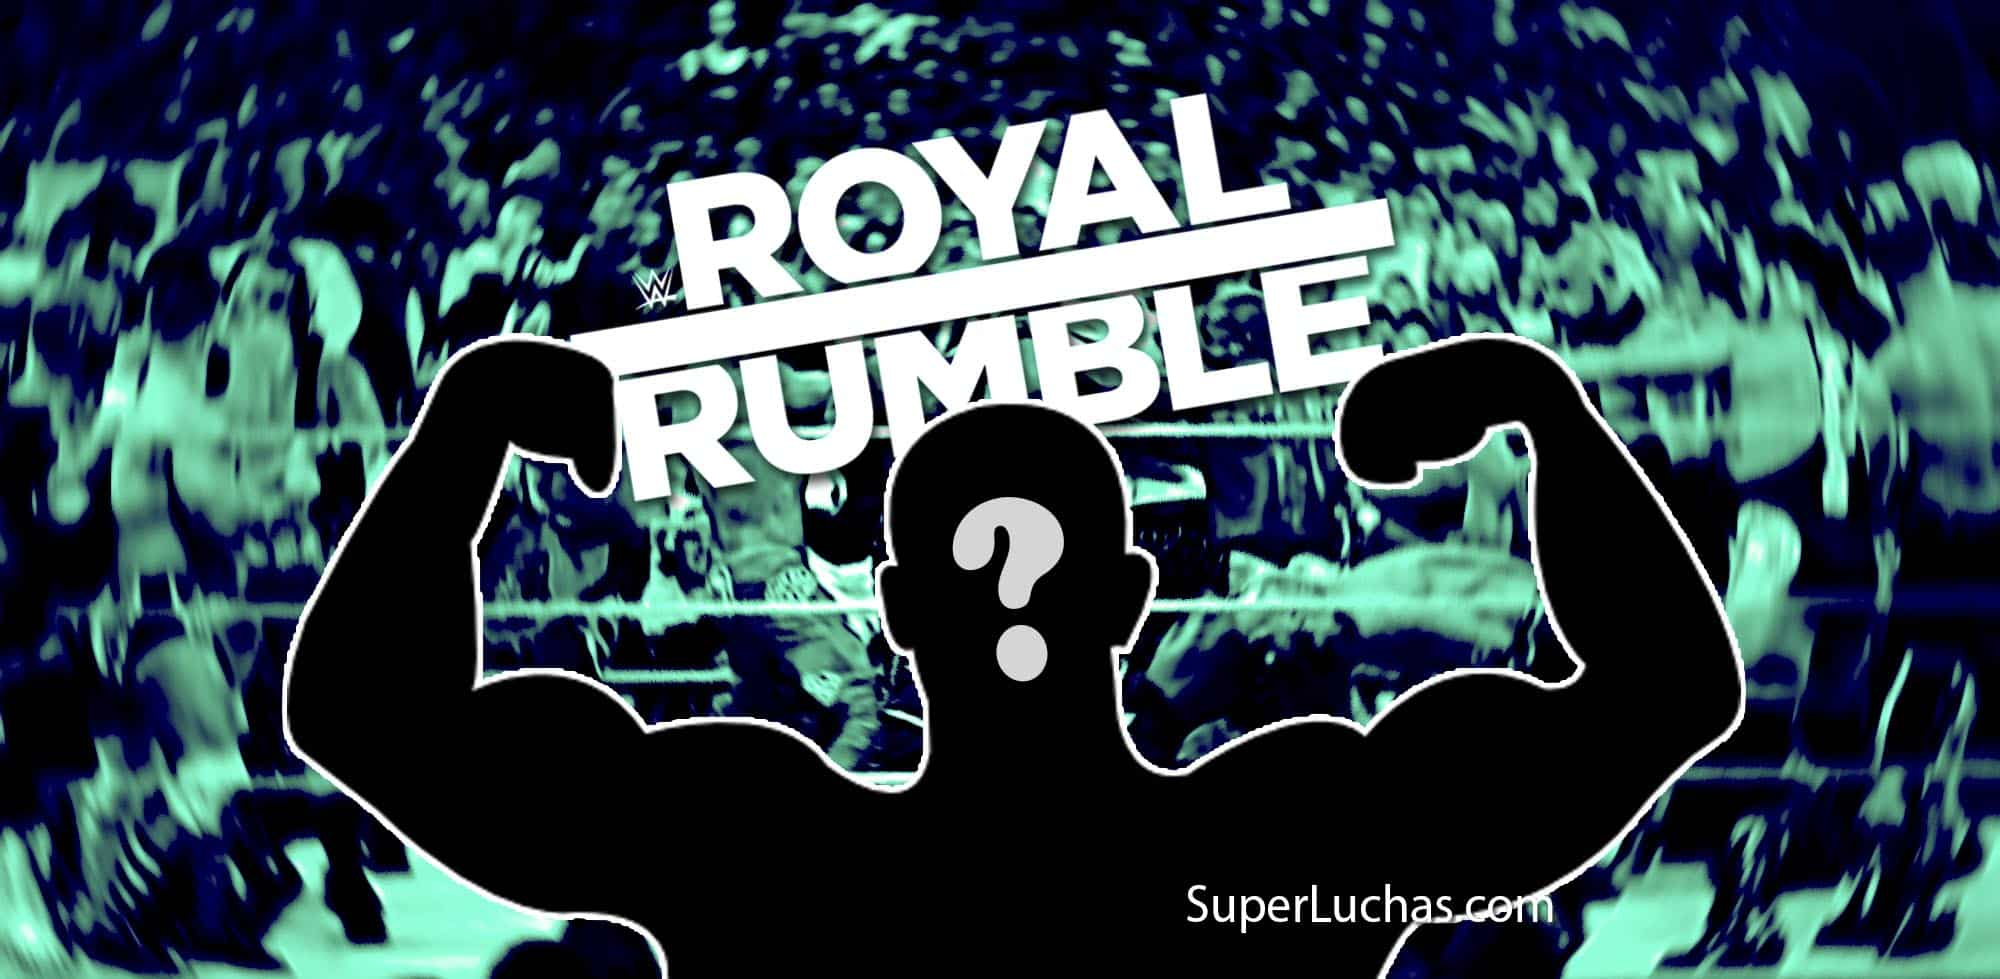 LISTA sorpresas Royal Rumble